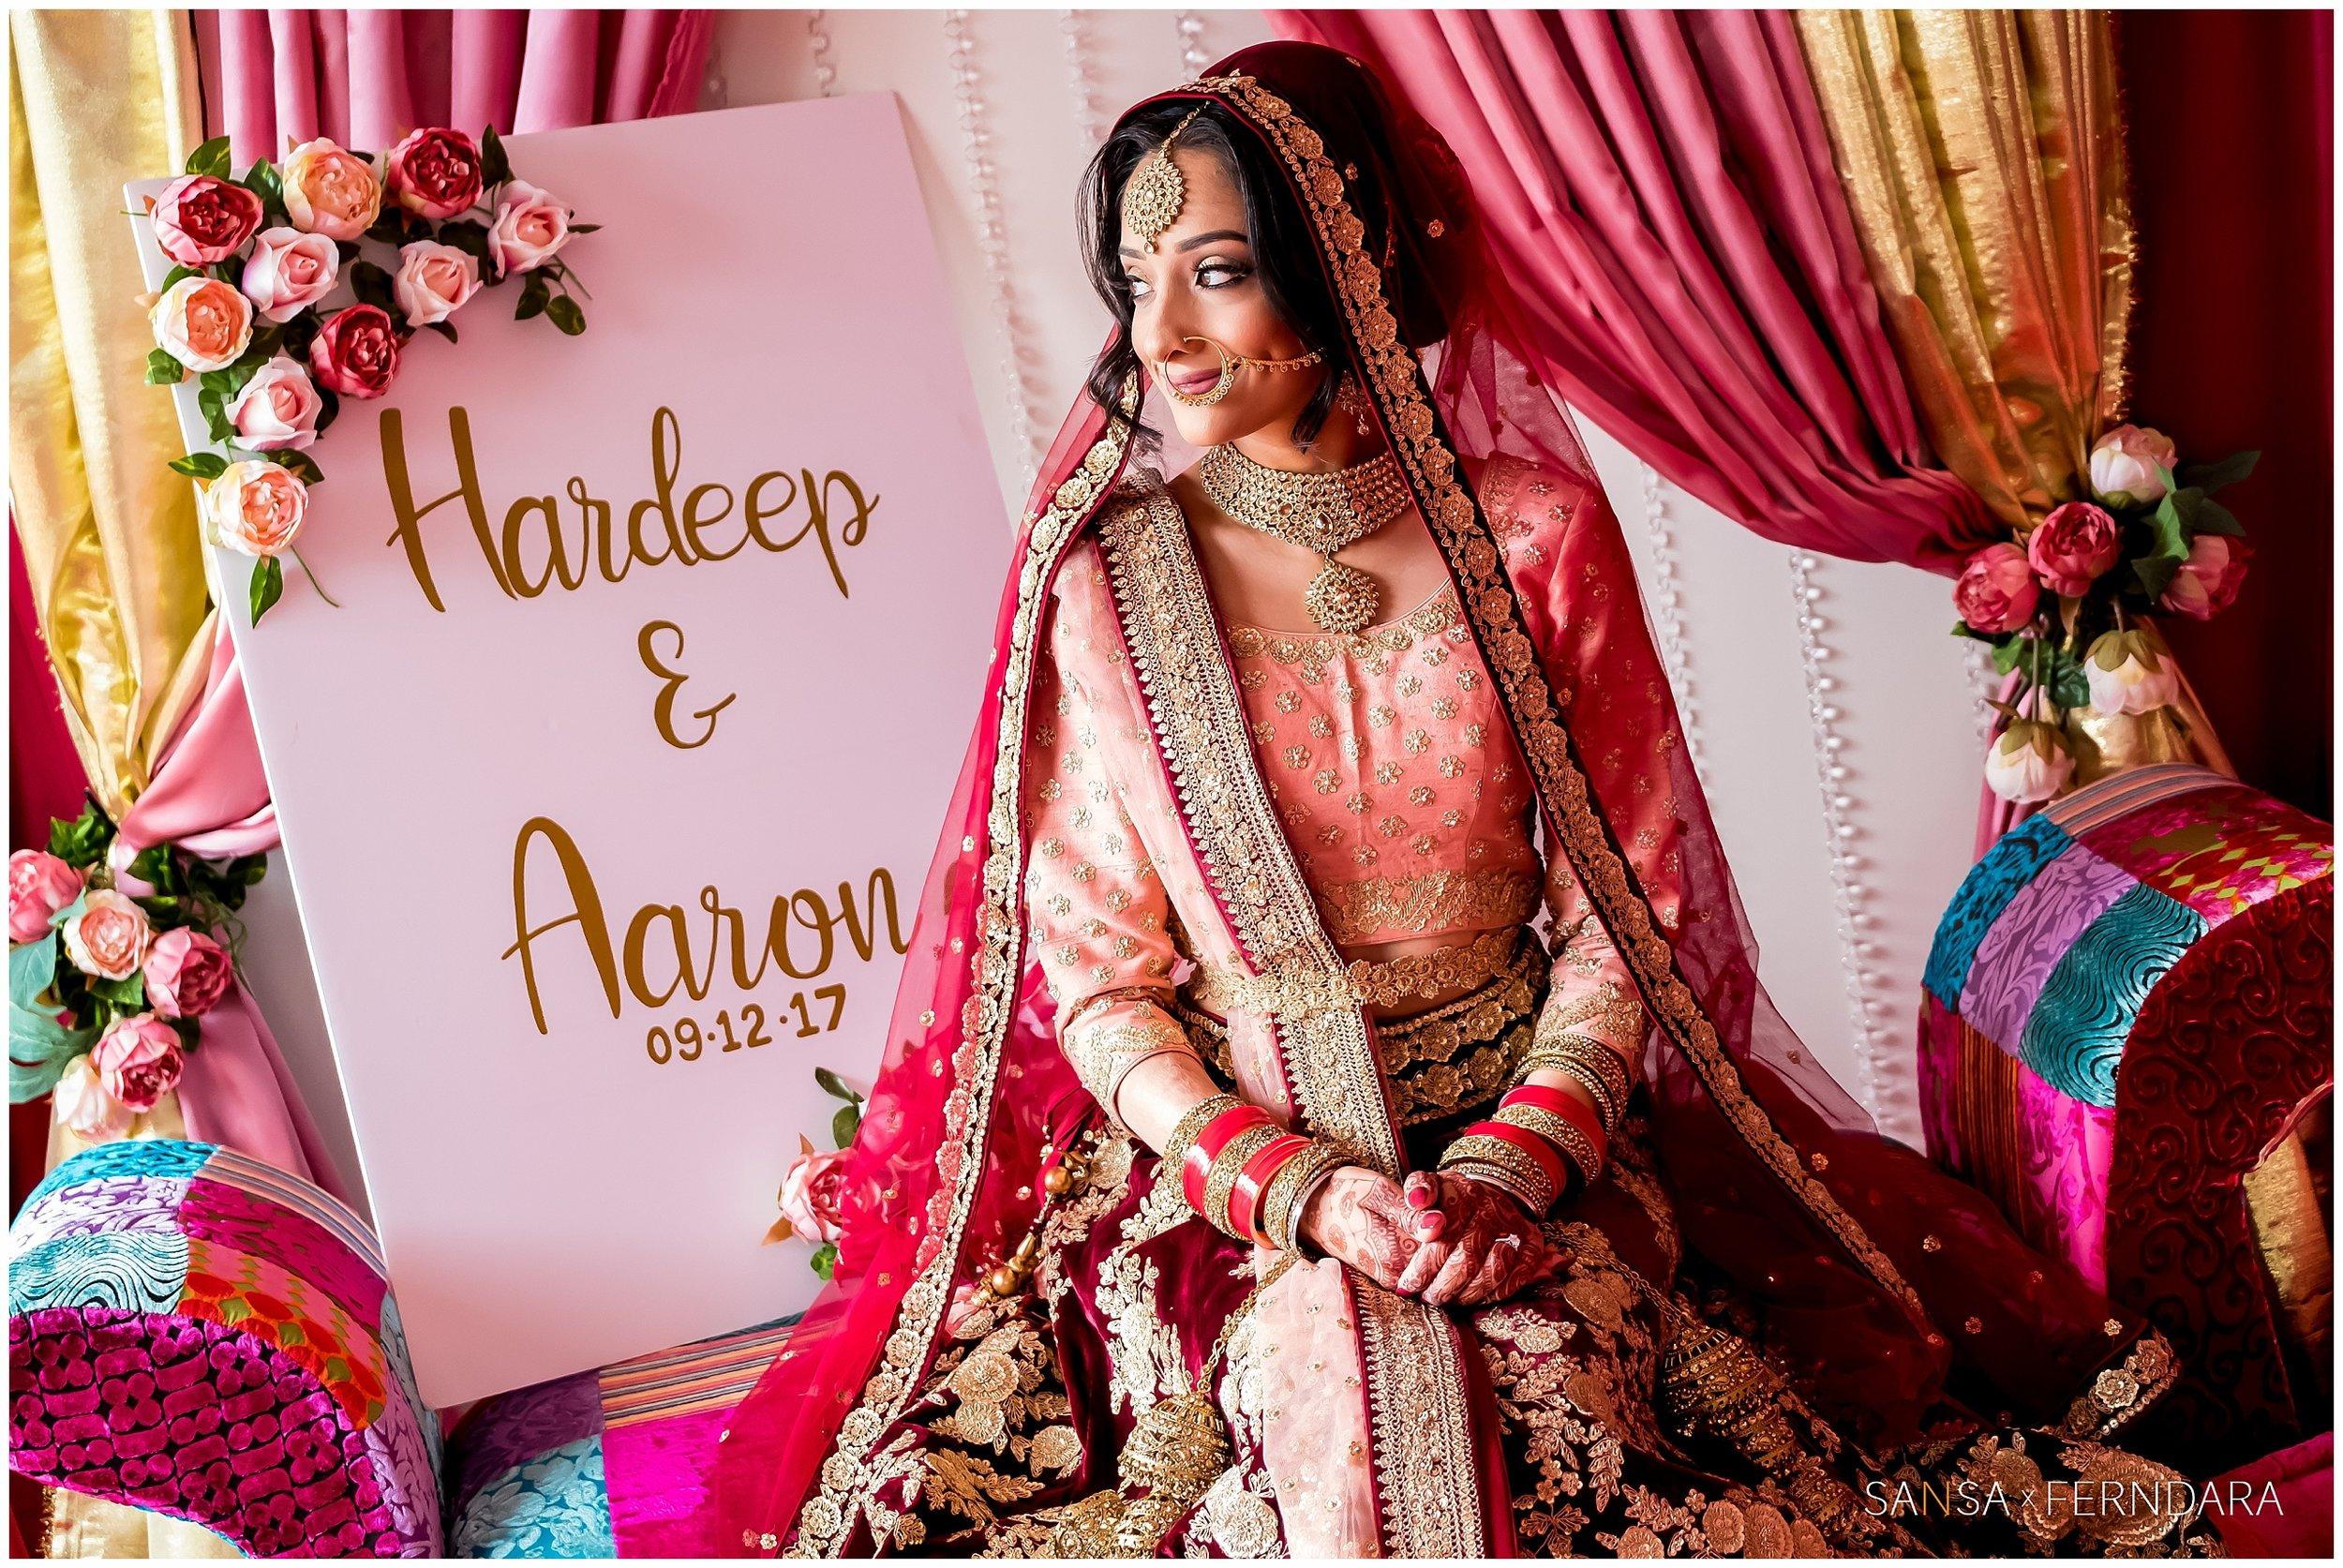 Indian wedding is all about multiple ceremonies and traditions to be followed.  Ferndara reflects those  traditions in wedding photographs.